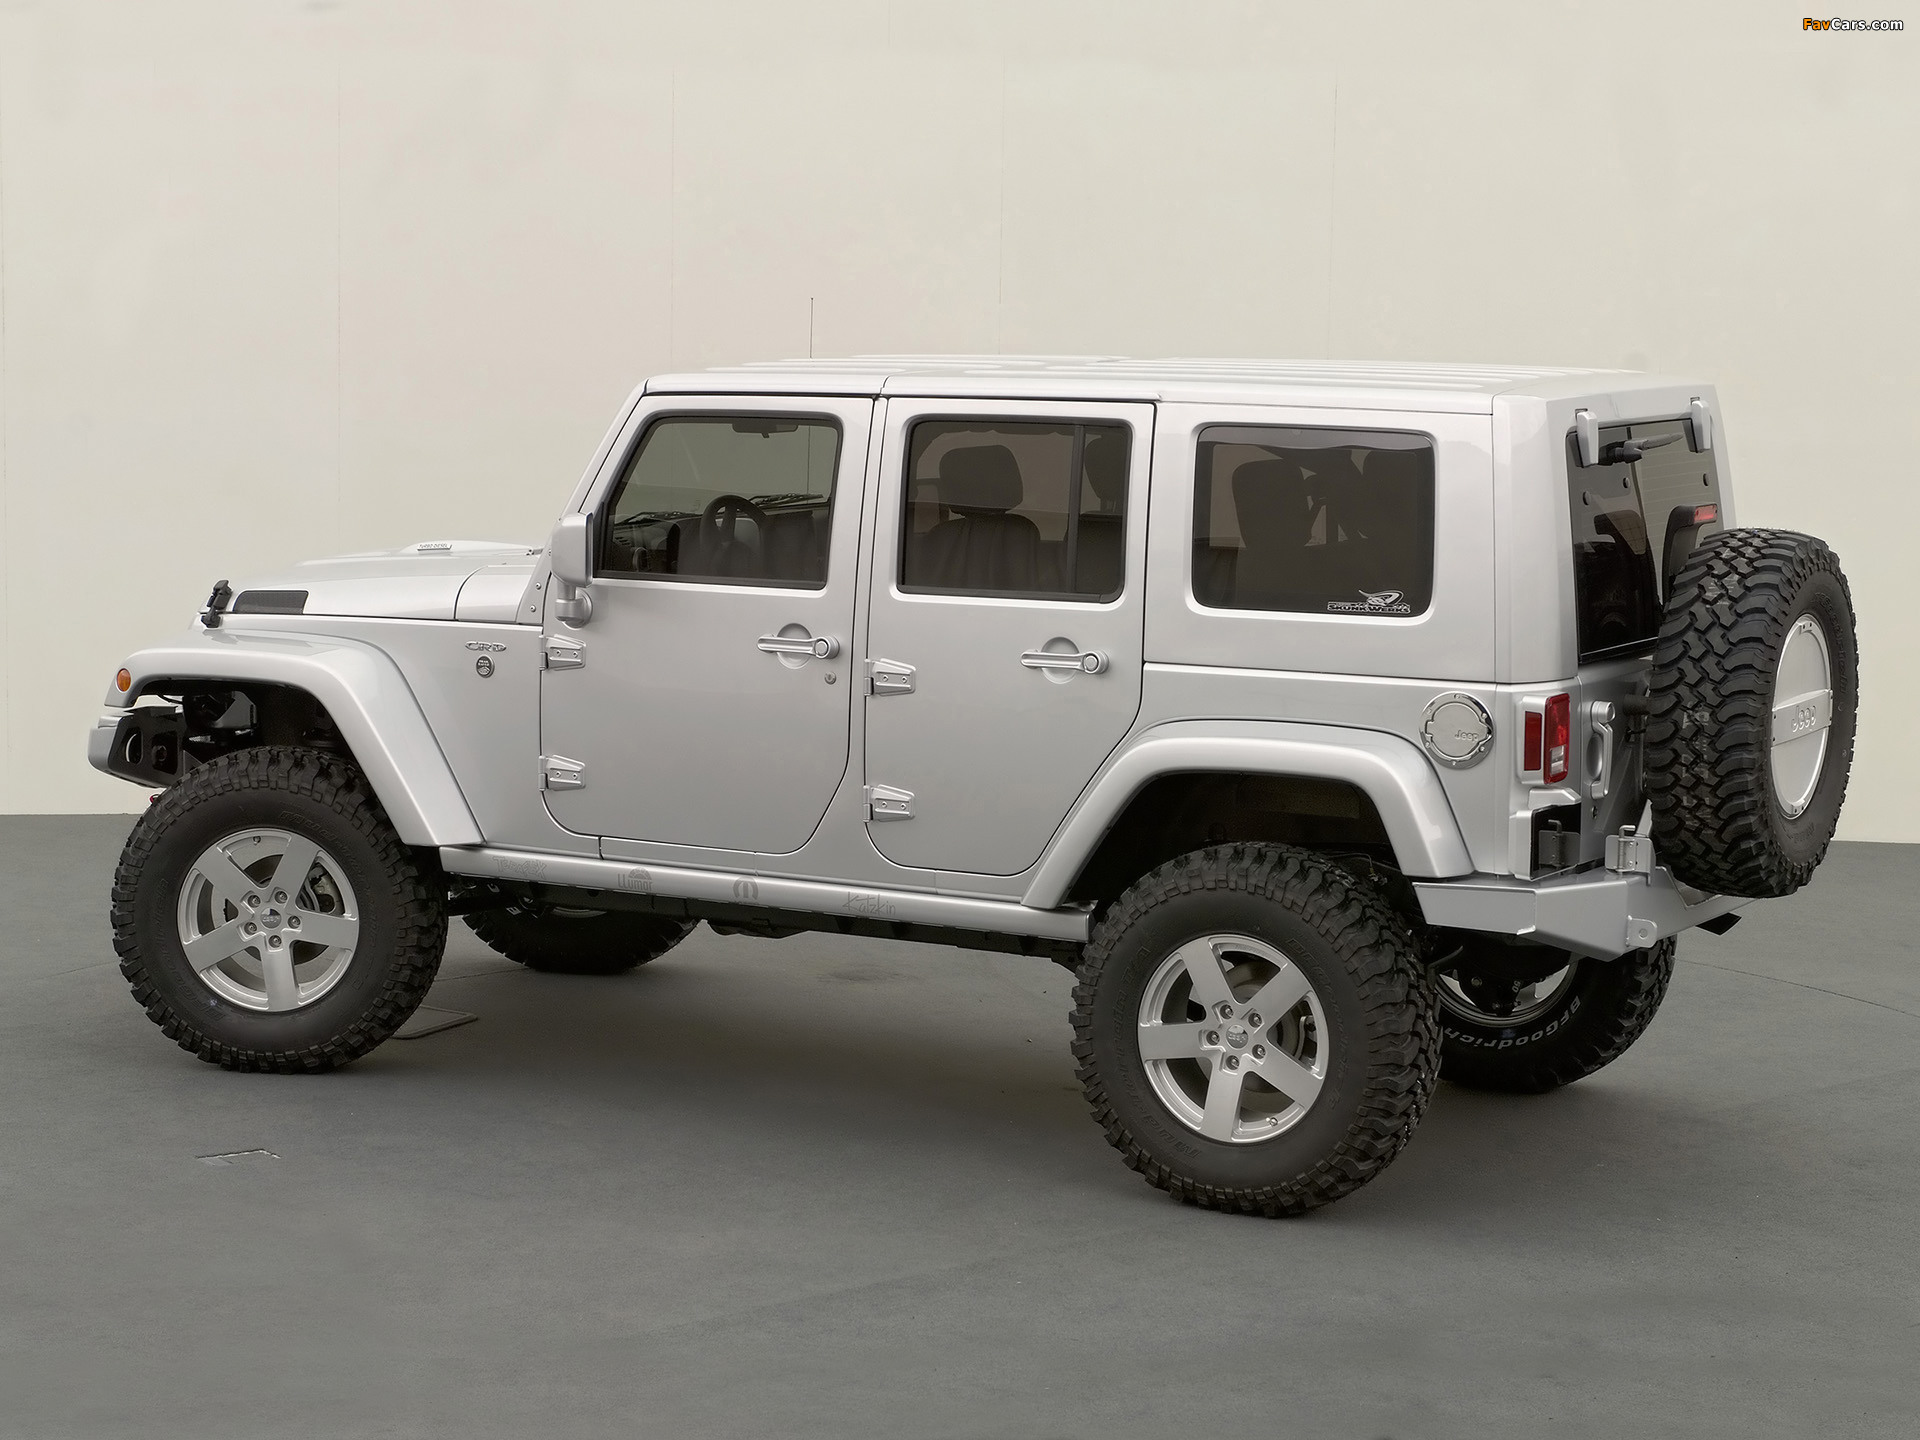 Jeep Wrangler Unlimited Rubicon Concept (JK) 2006 wallpapers (1920 x 1440)